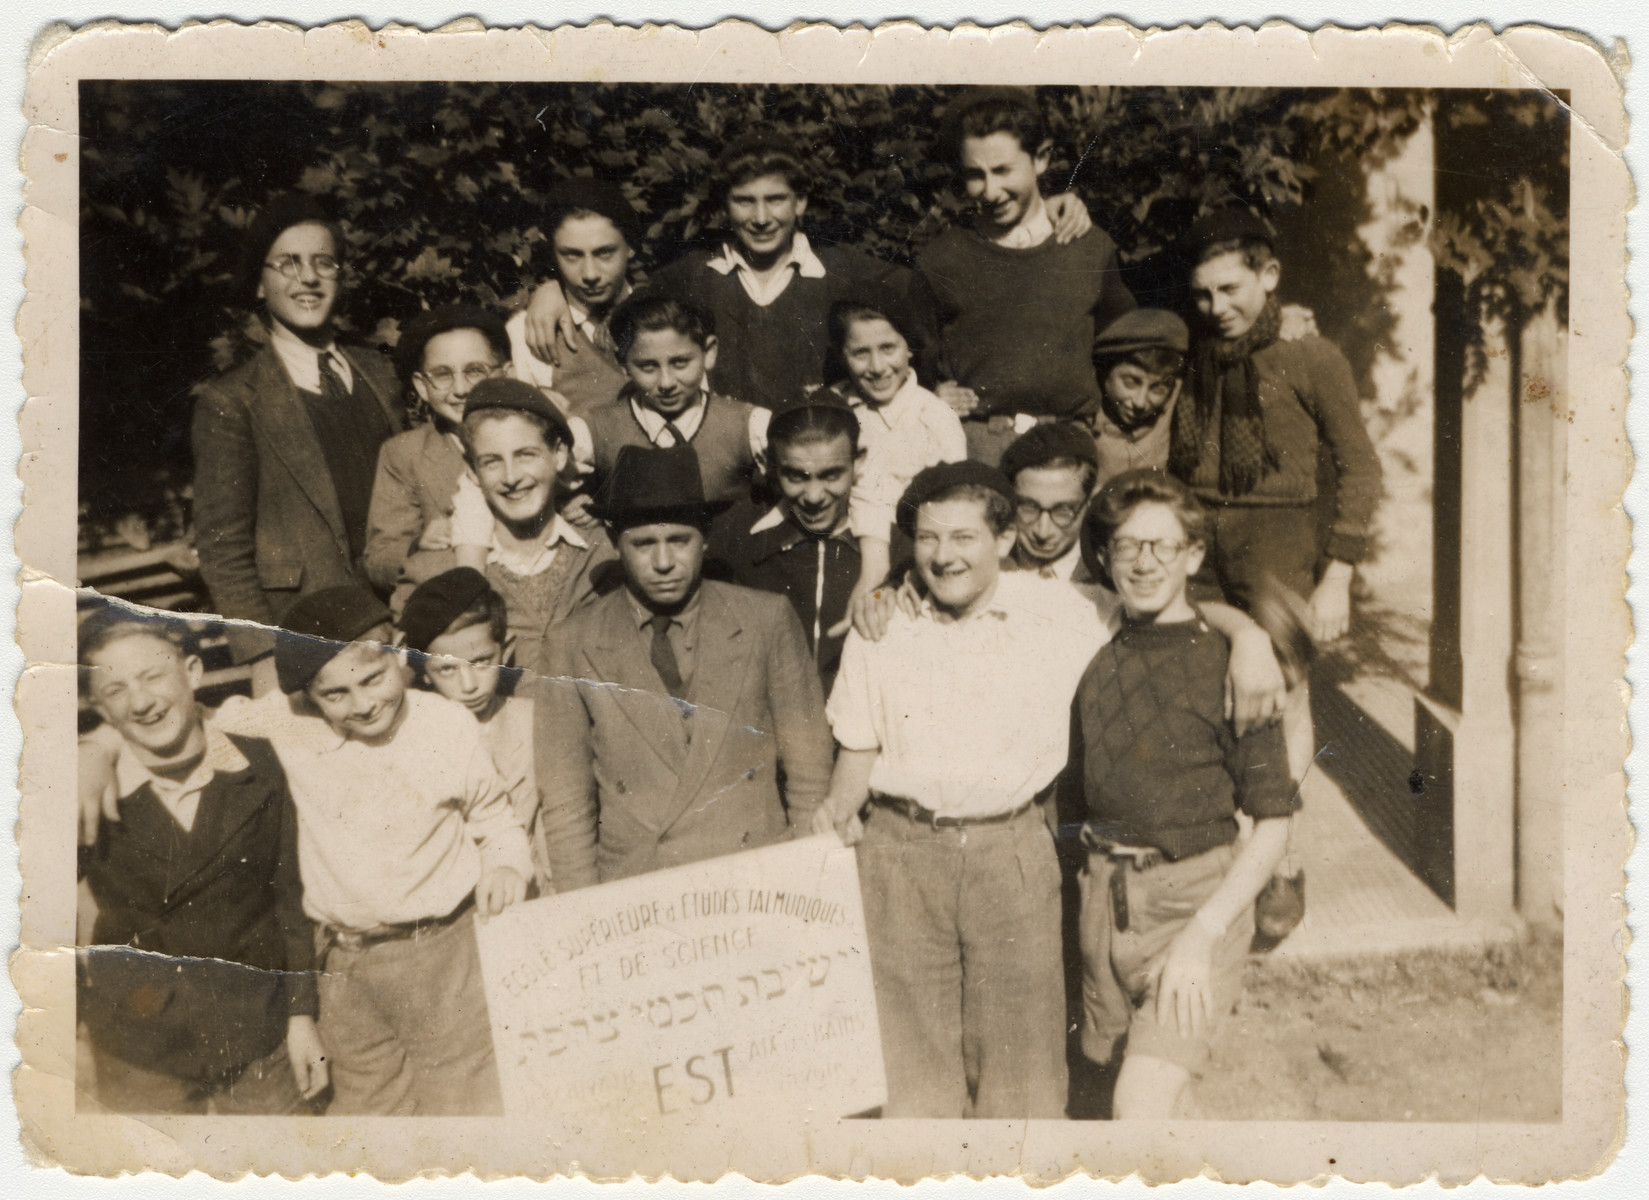 Group portrait of students in the Yeshiva Chochmei Tzorfat (scholars of France) in Aix-les-Bains.  Rabbi Chaikin is pictured in the center.  To his immediate right is Jacques (Jacko) Klein.